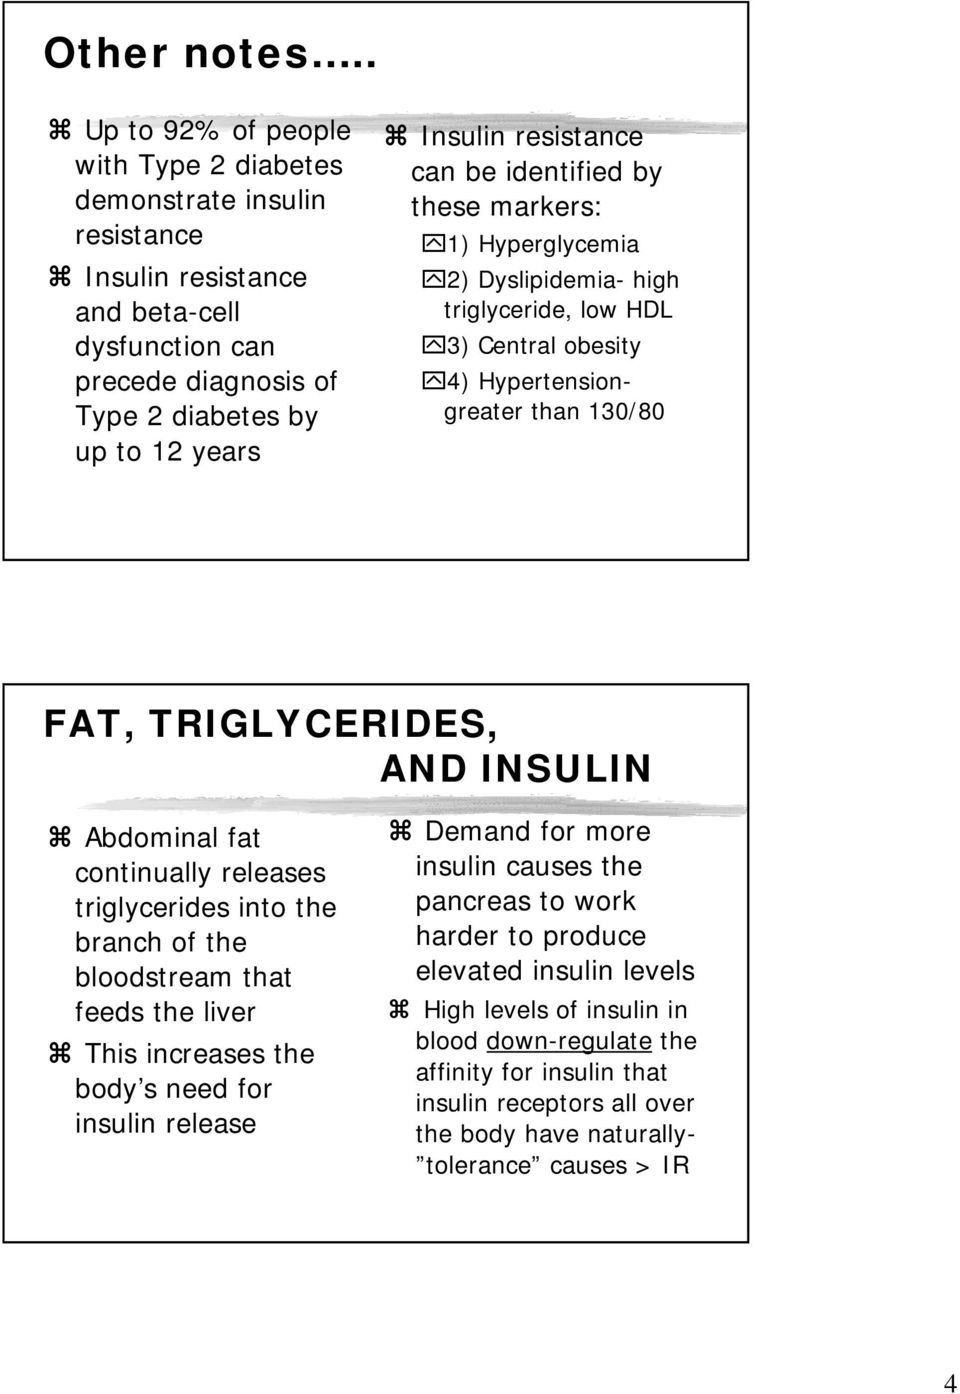 can be identified by these markers: 1) Hyperglycemia 2) Dyslipidemia- high triglyceride, low HDL 3) Central obesity 4) Hypertensiongreater than 130/80 FAT, TRIGLYCERIDES, AND INSULIN Abdominal fat